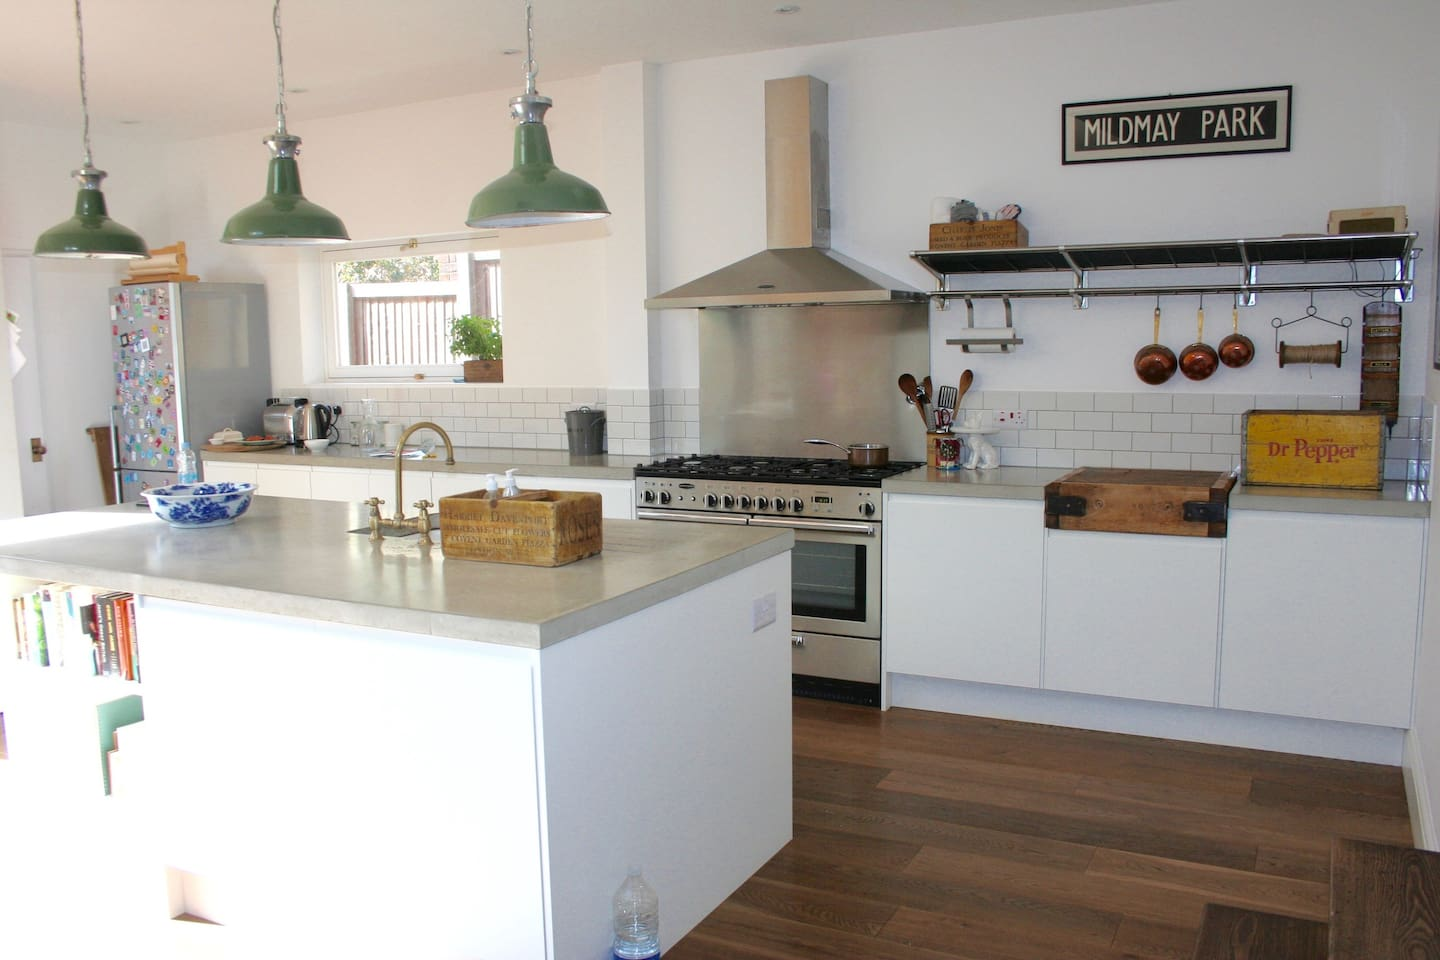 Open plan Kitchen area with larder room towards back corner